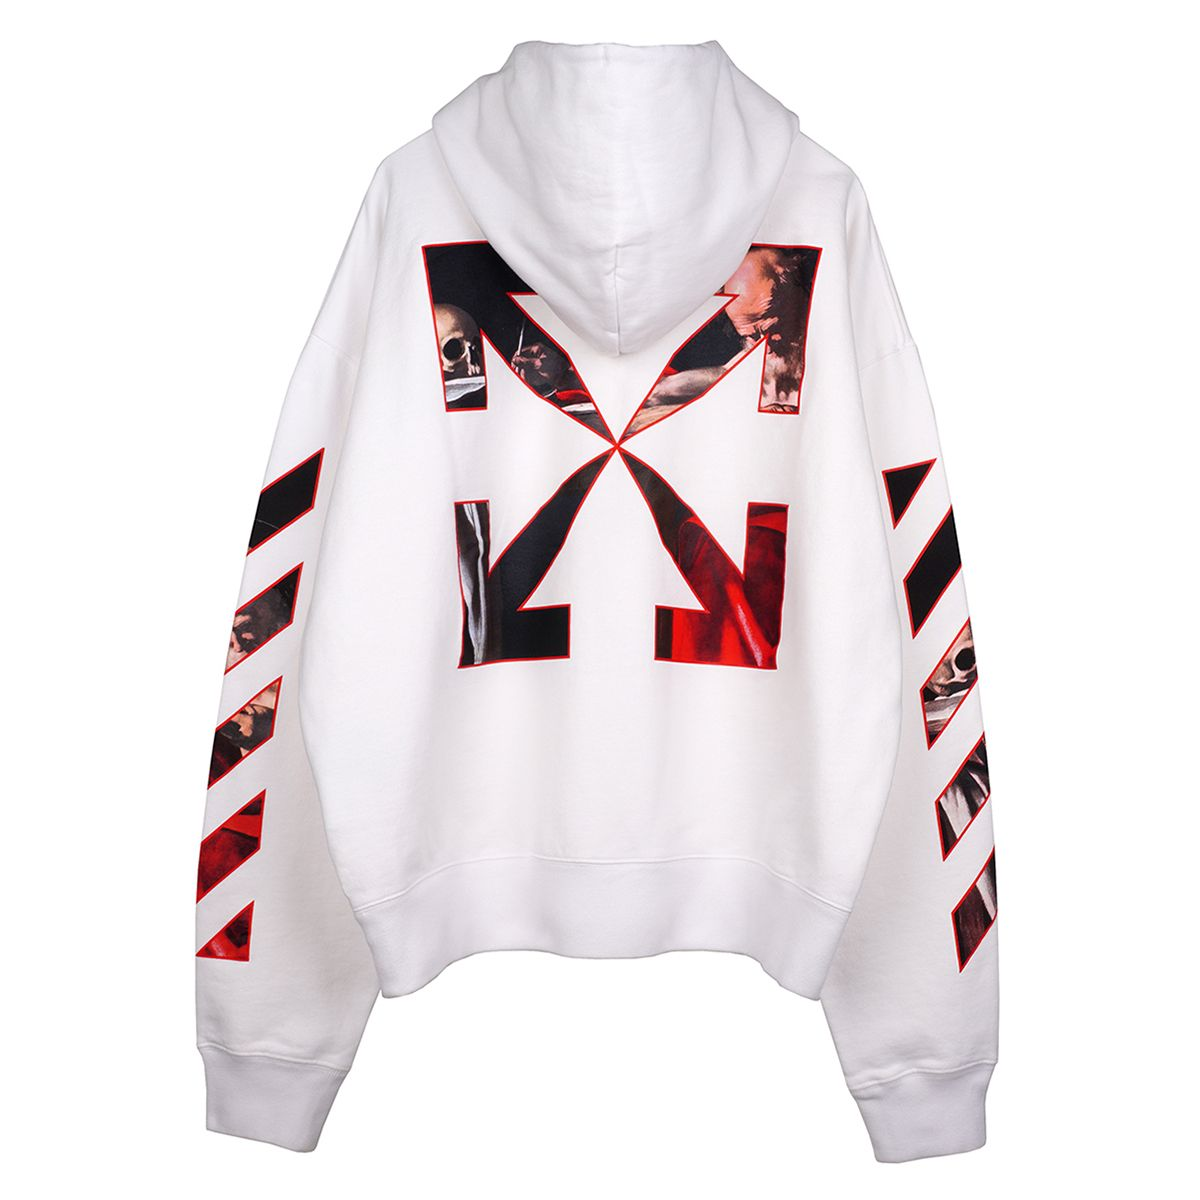 OFF-WHITE c/o Virgil Abloh MENS CARAVAGGIO OVER HOODIE / 0125 : WHITE RED